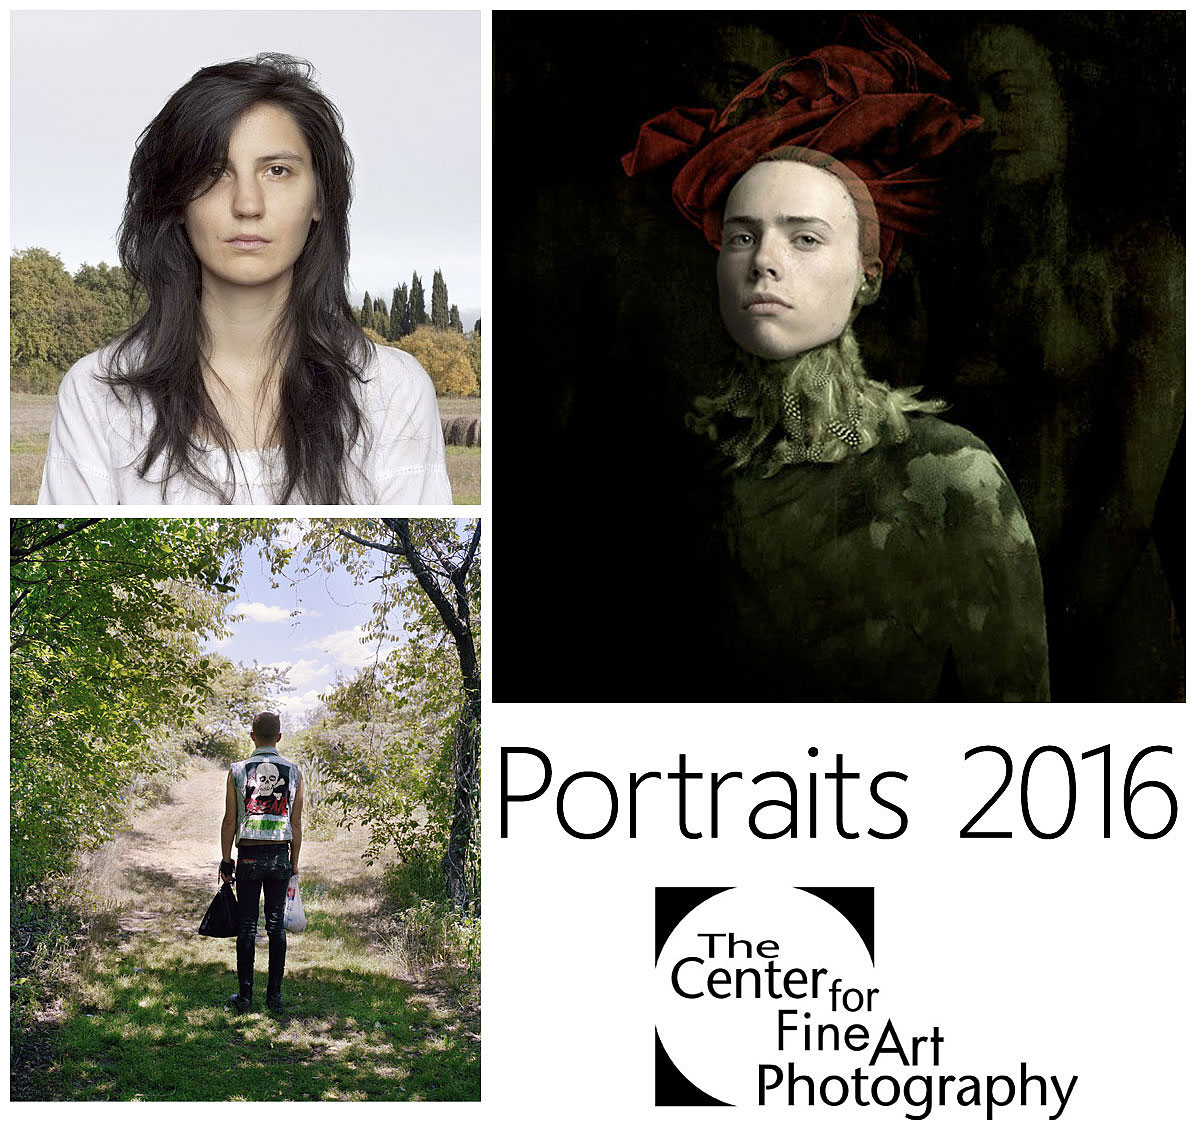 Portraits 2016 with Martha Schneider | INTERNATIONAL PHOTOGRAPHIC CALL FOR ENTRIES - logo